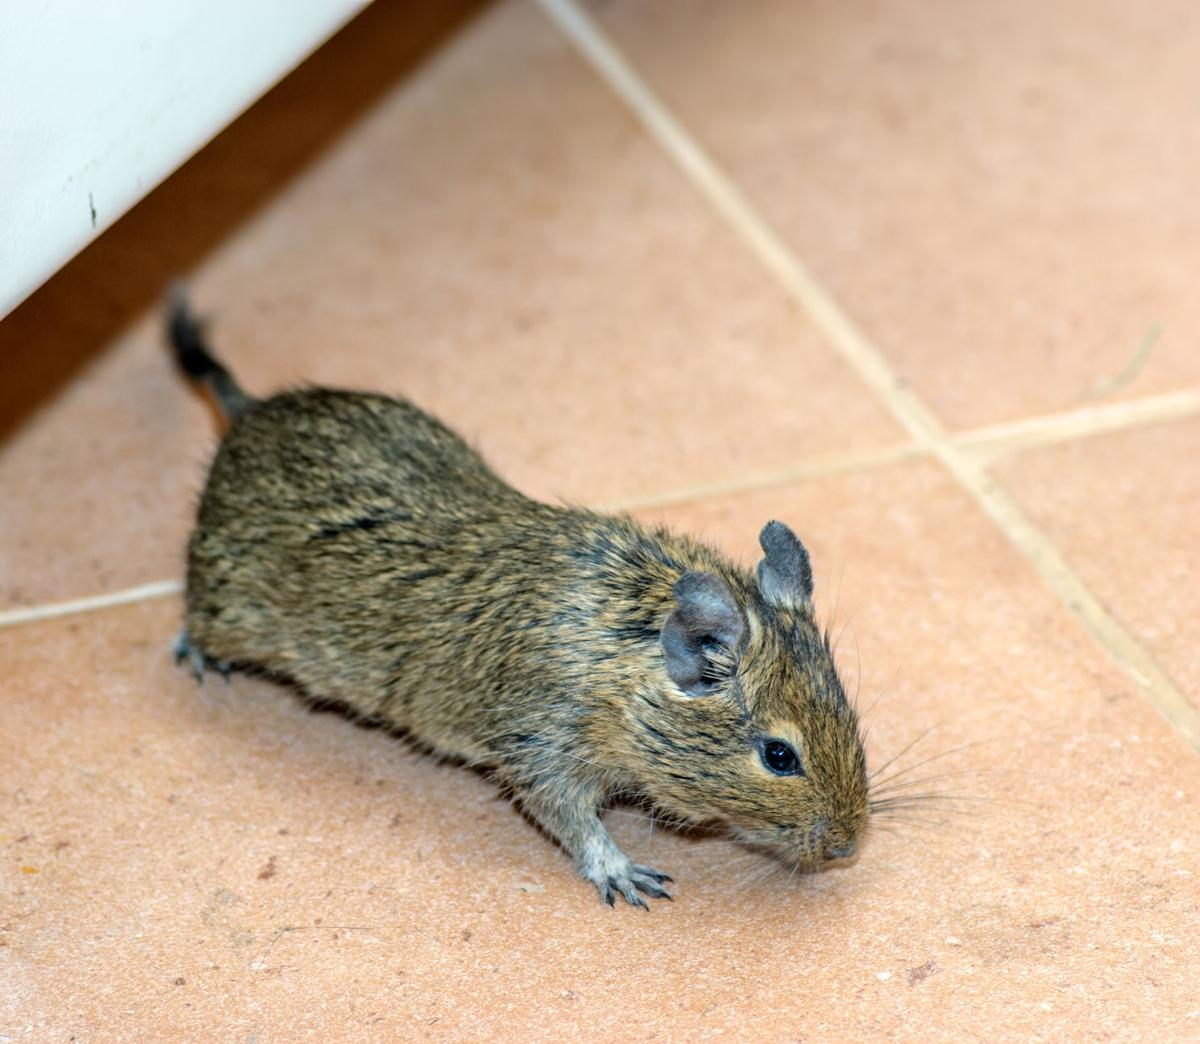 How Do I Get Rid of the Mice Invading My Patio?